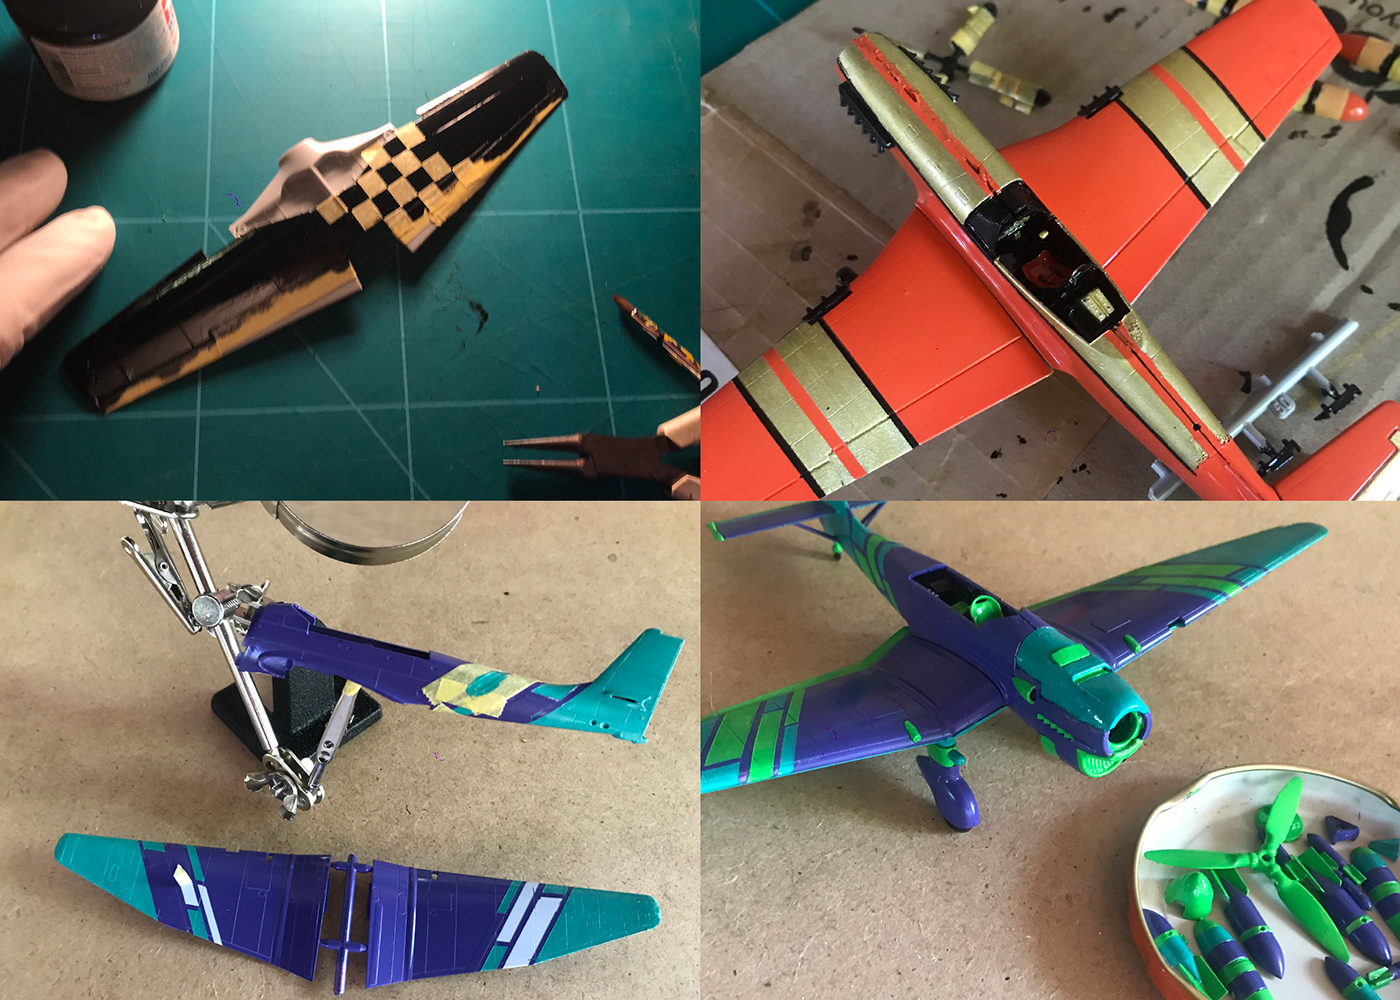 scale models,World war 2,WWII,ww2,Need For Speed,airplanes,Racing Car,Custom Paint Jobs,Mustang,stuka,Spitfire